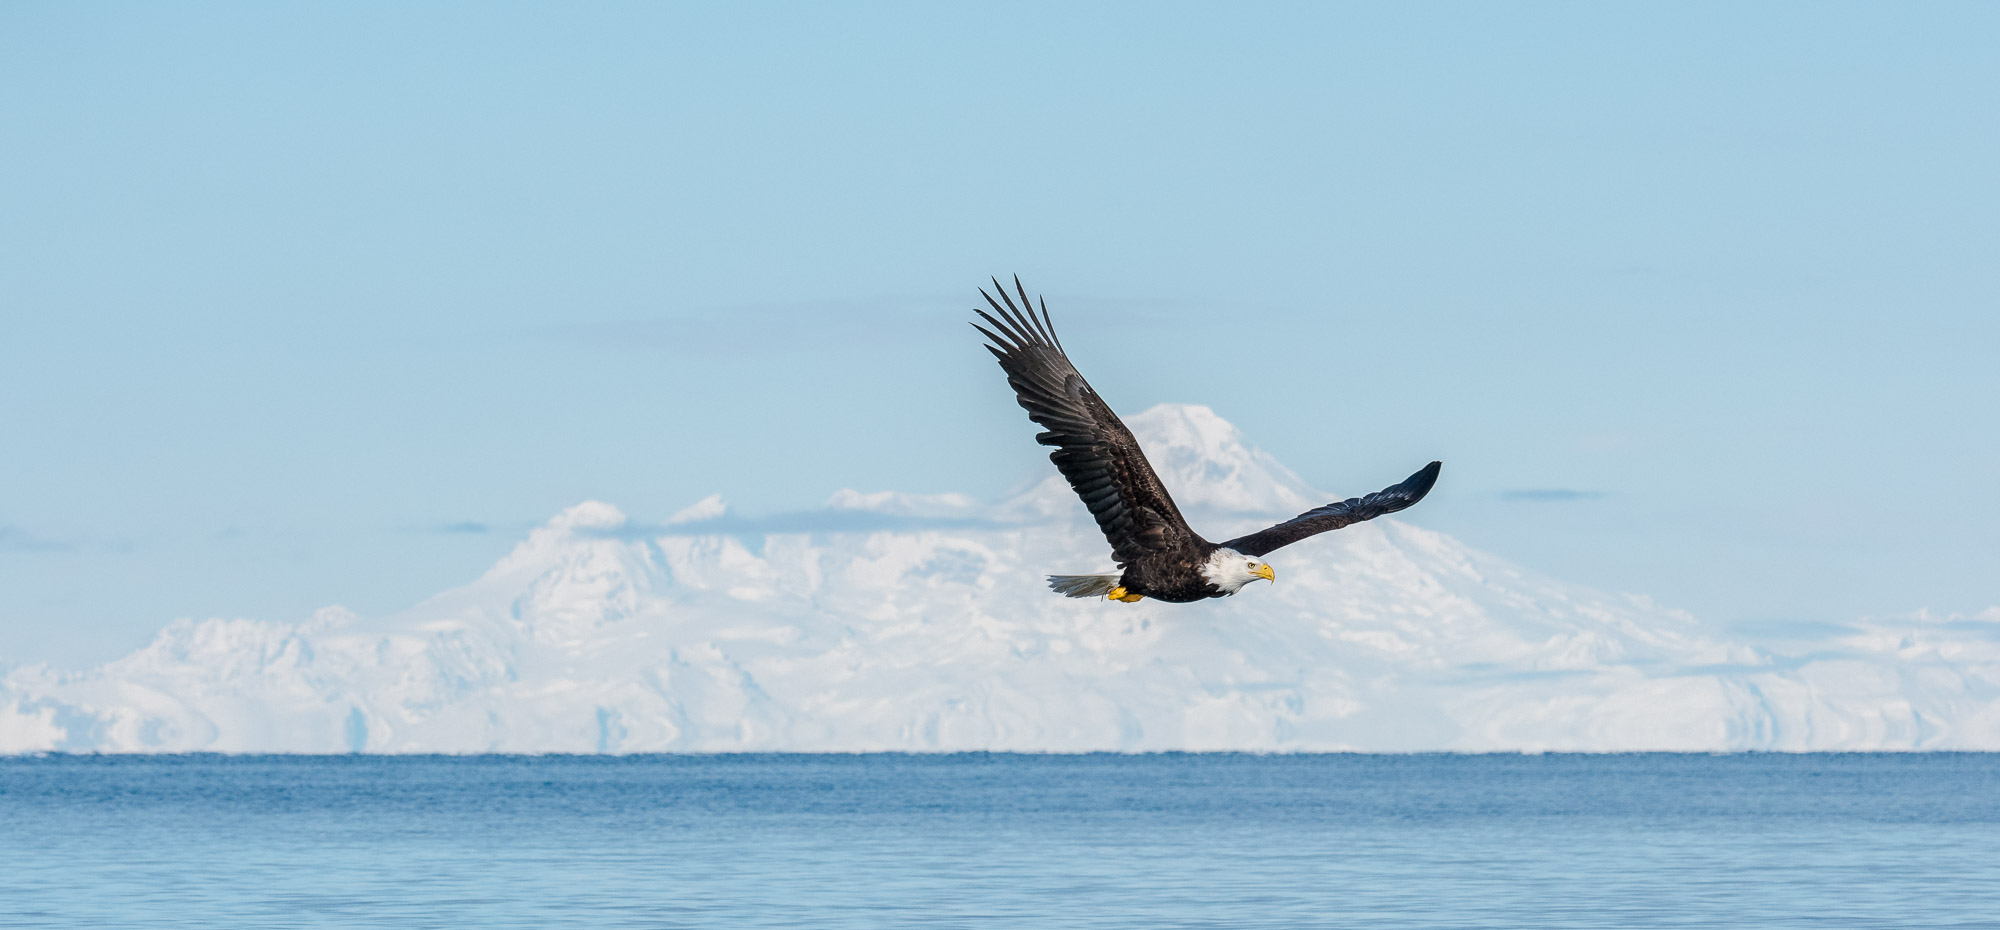 Bald Eagle and Mount Iliamna - Kachemak Bay, Alaska